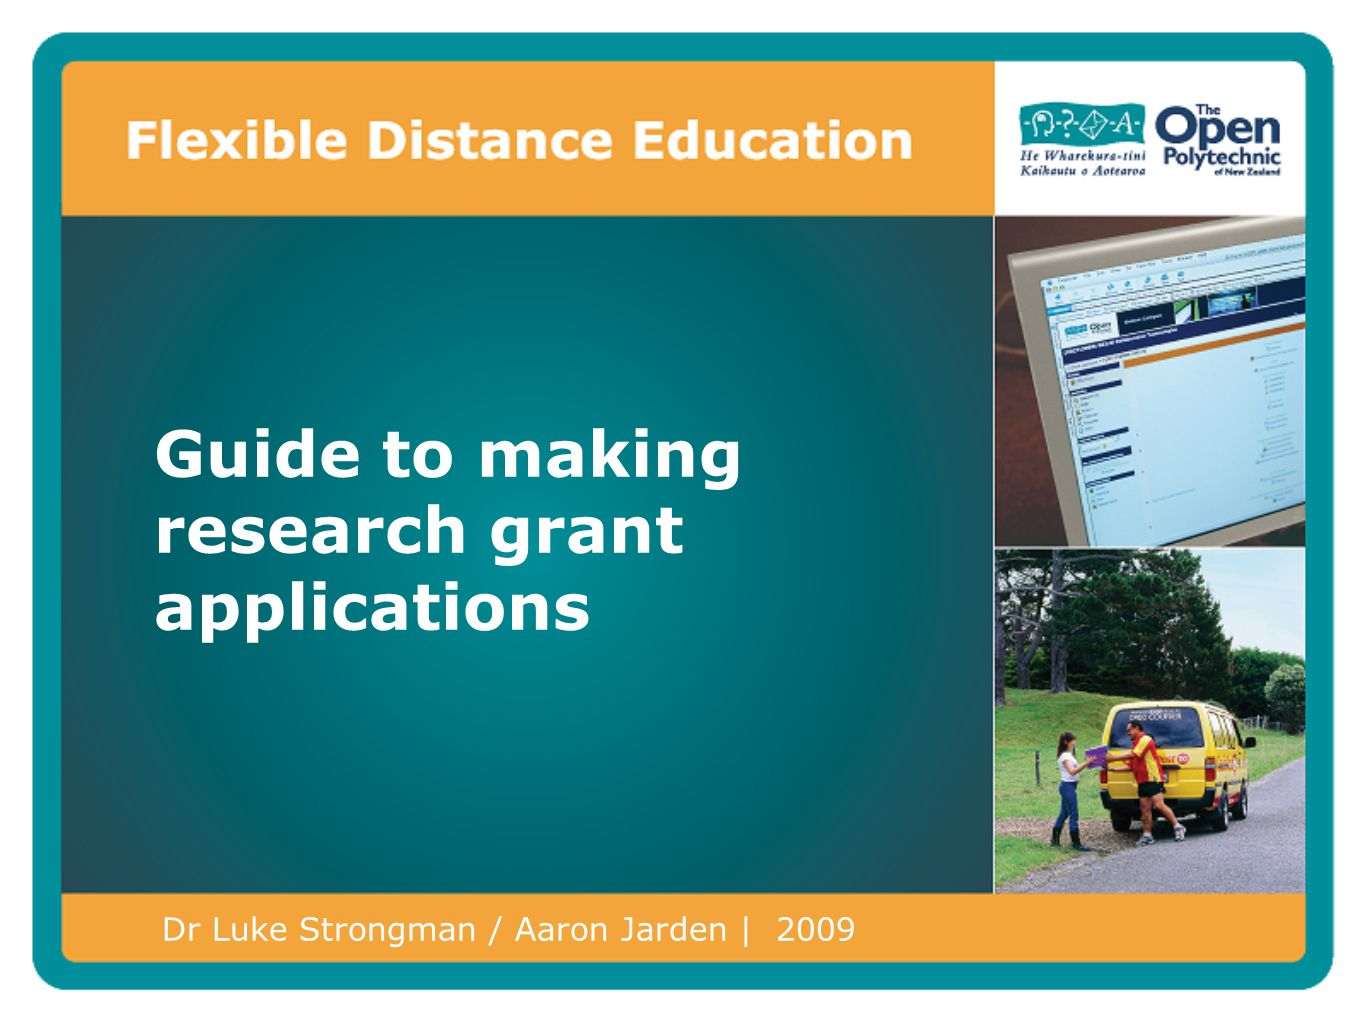 Dr Luke Strongman / Aaron Jarden | 2009 Guide to making research grant applications